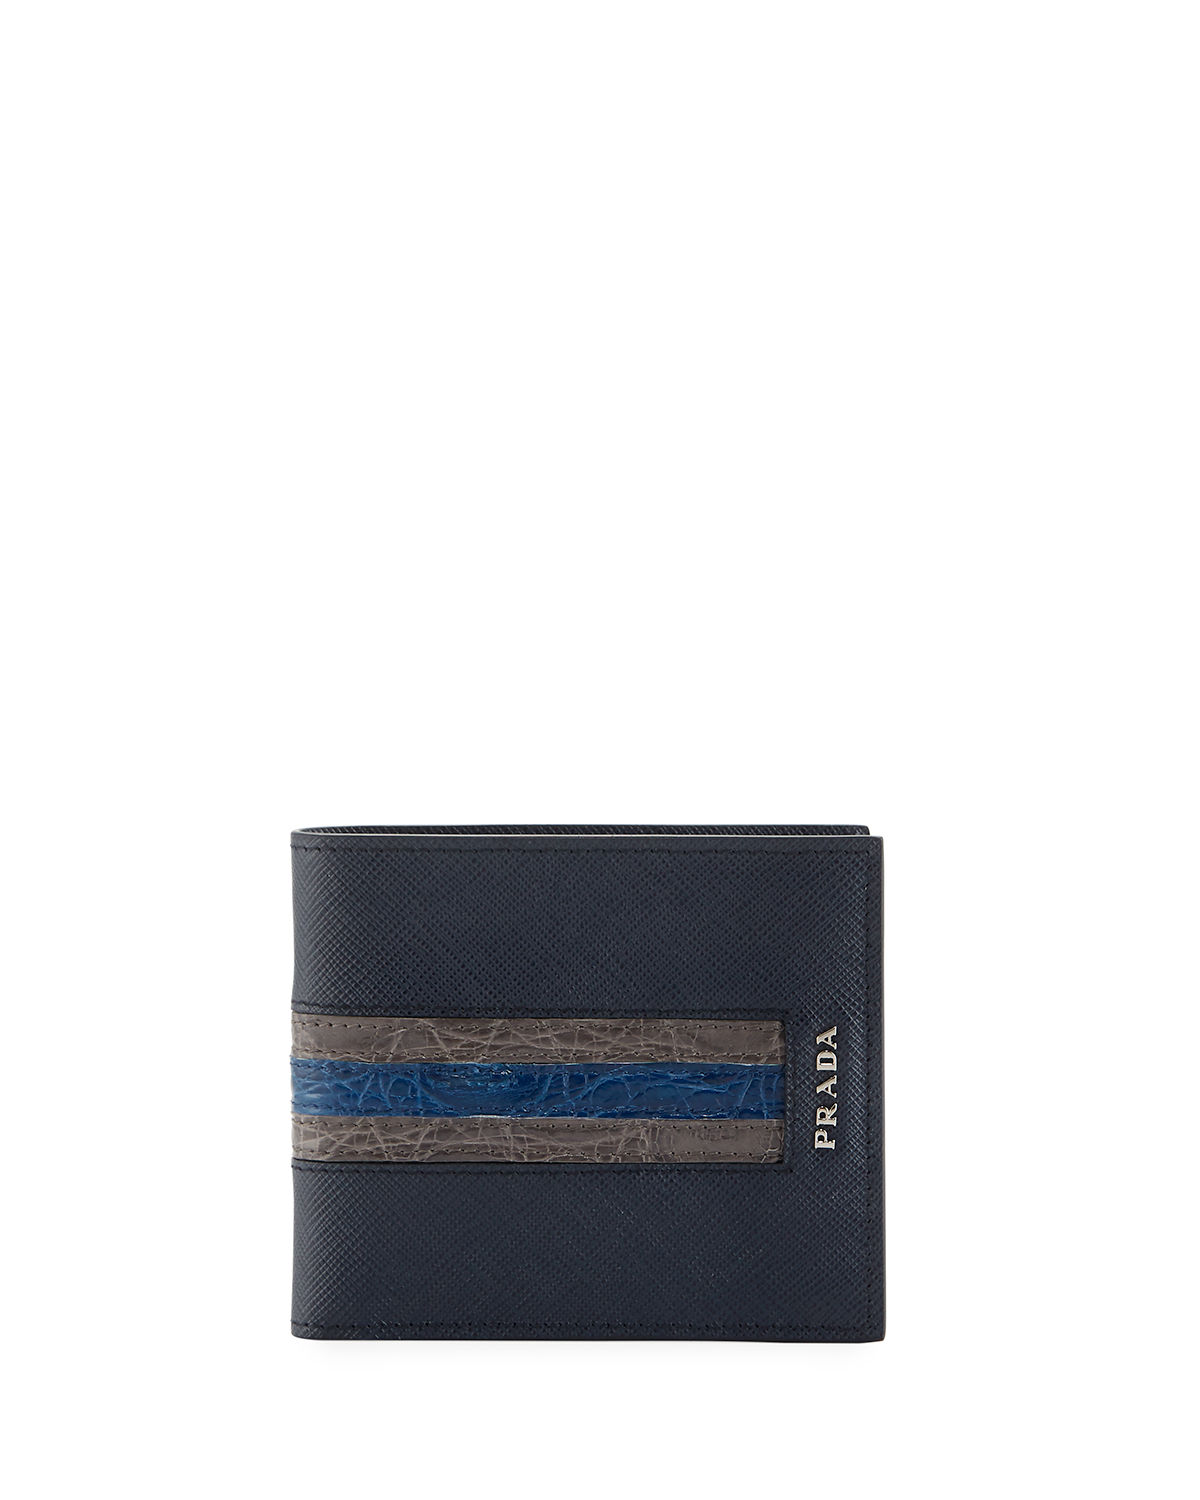 c1bb4745a6 Prada Saffiano Leather Bi-Fold Wallet with Crocodile Stripe